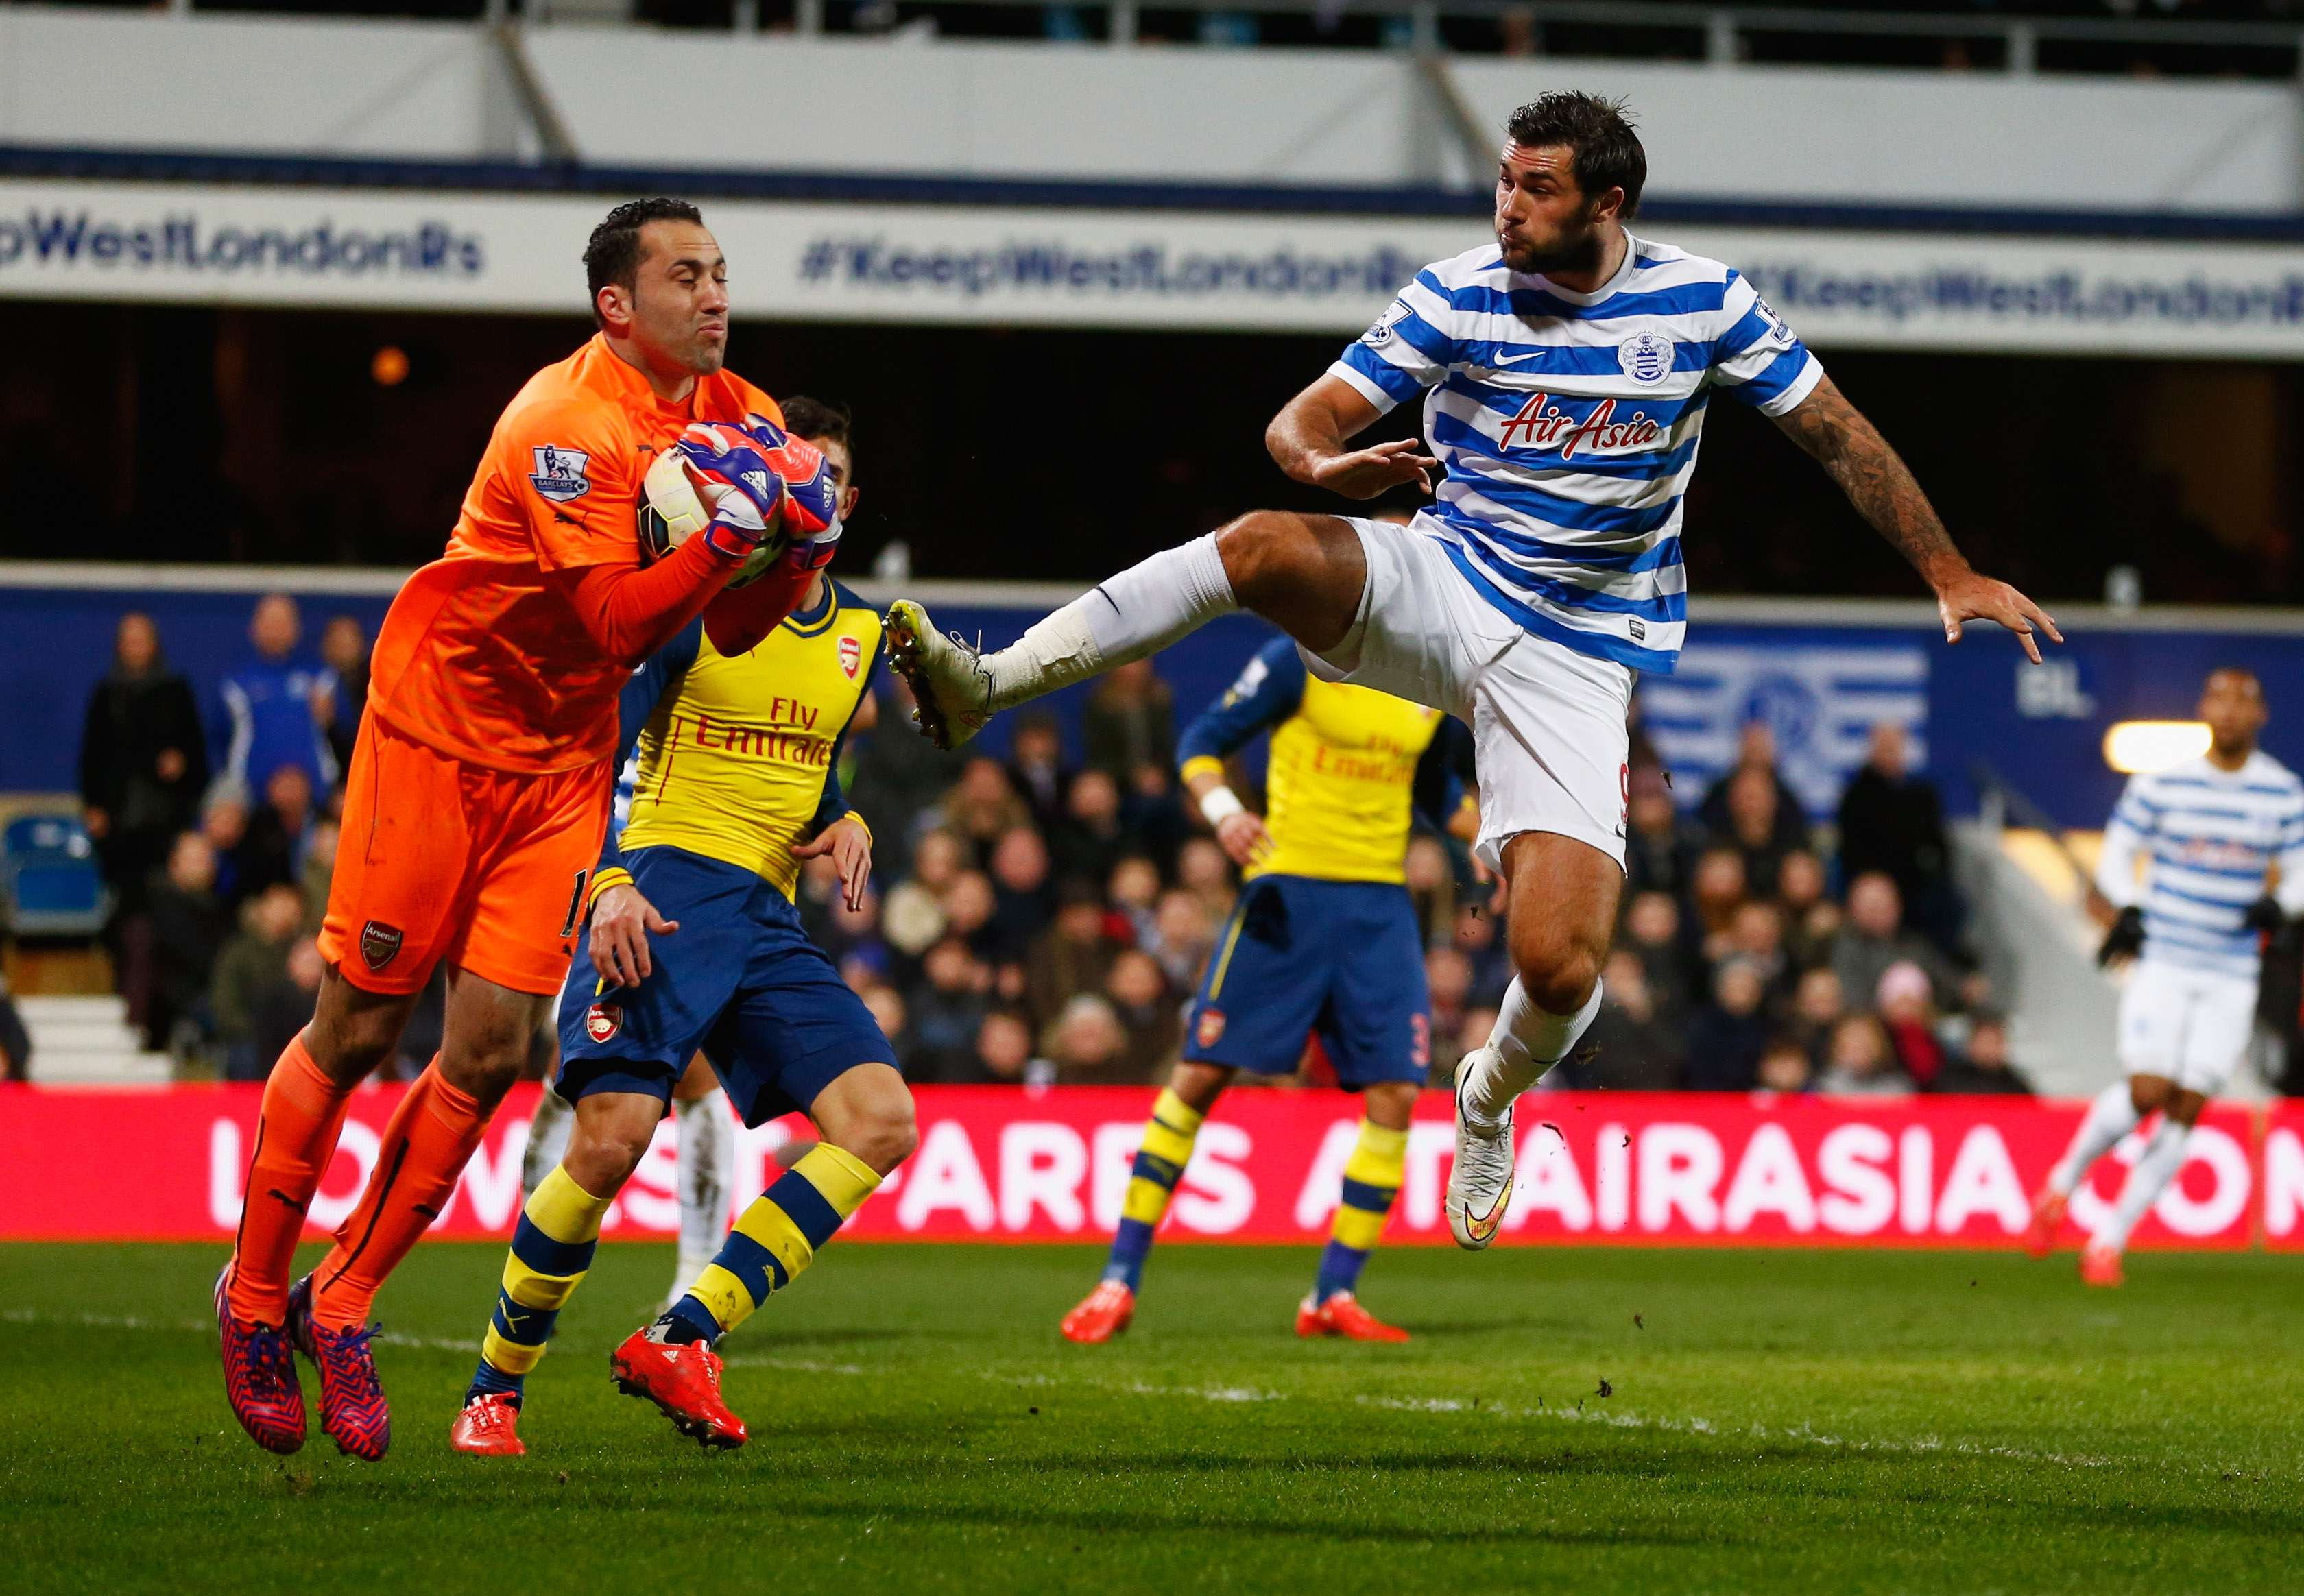 Las atajadas de David Ospina fueron claves en la victoria del Arsenal frente al Queens Park Rangers. Foto: Getty Images